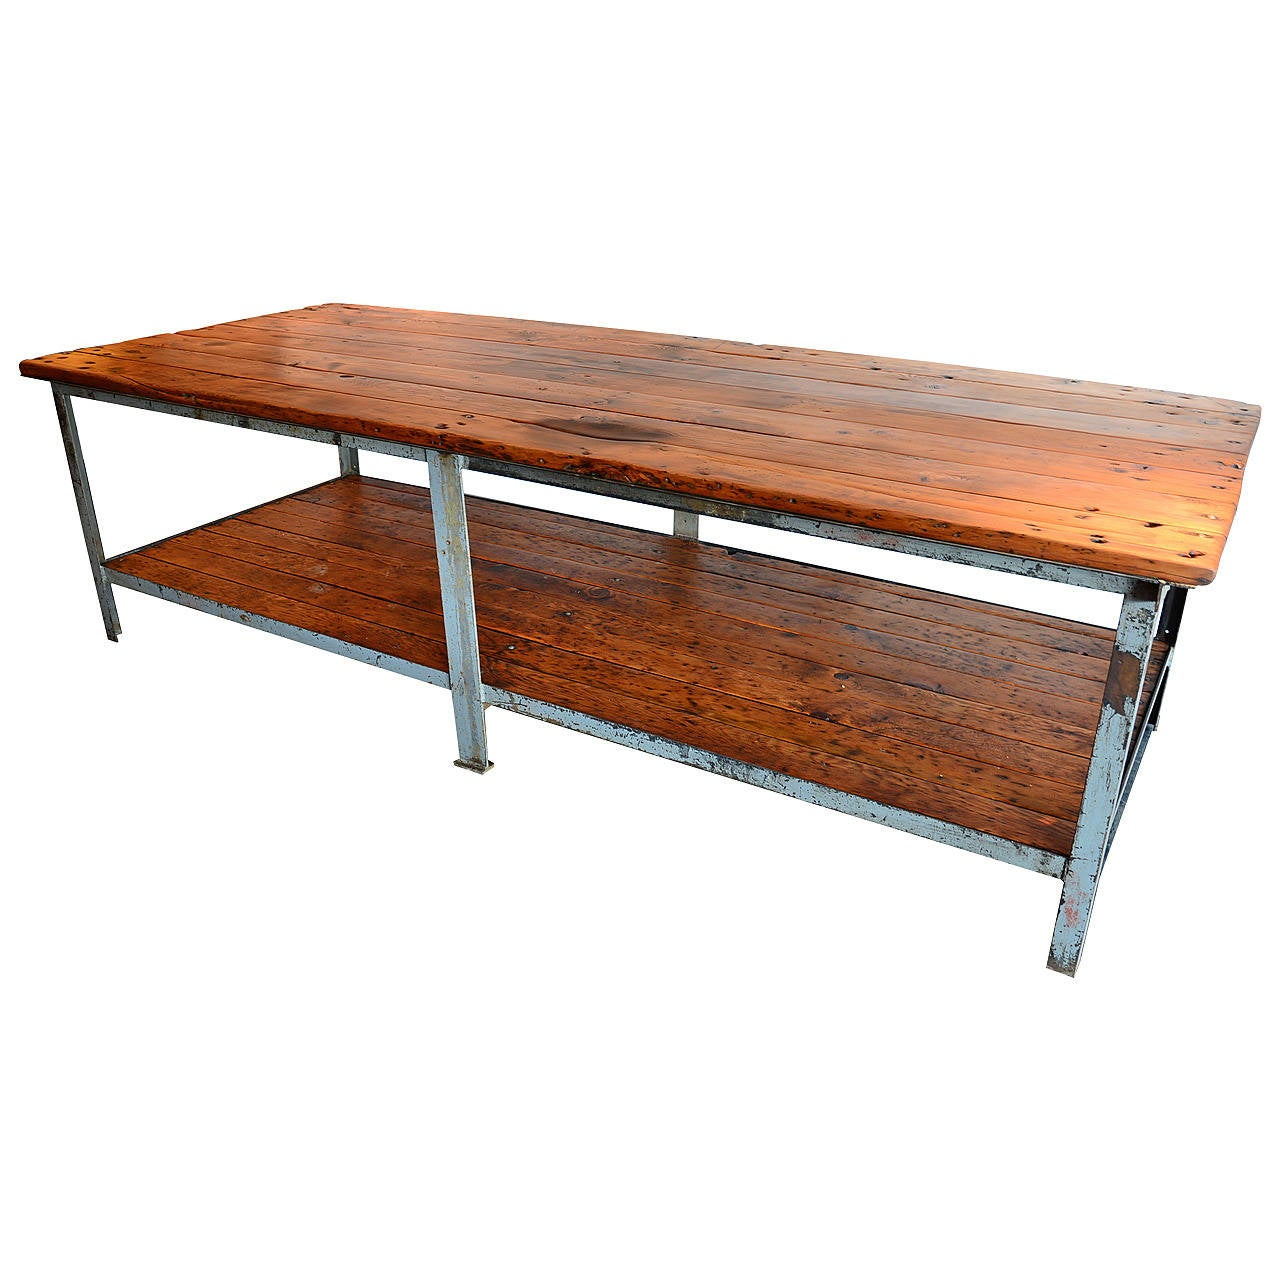 Double decker work table at 1stdibs for Furniture work table